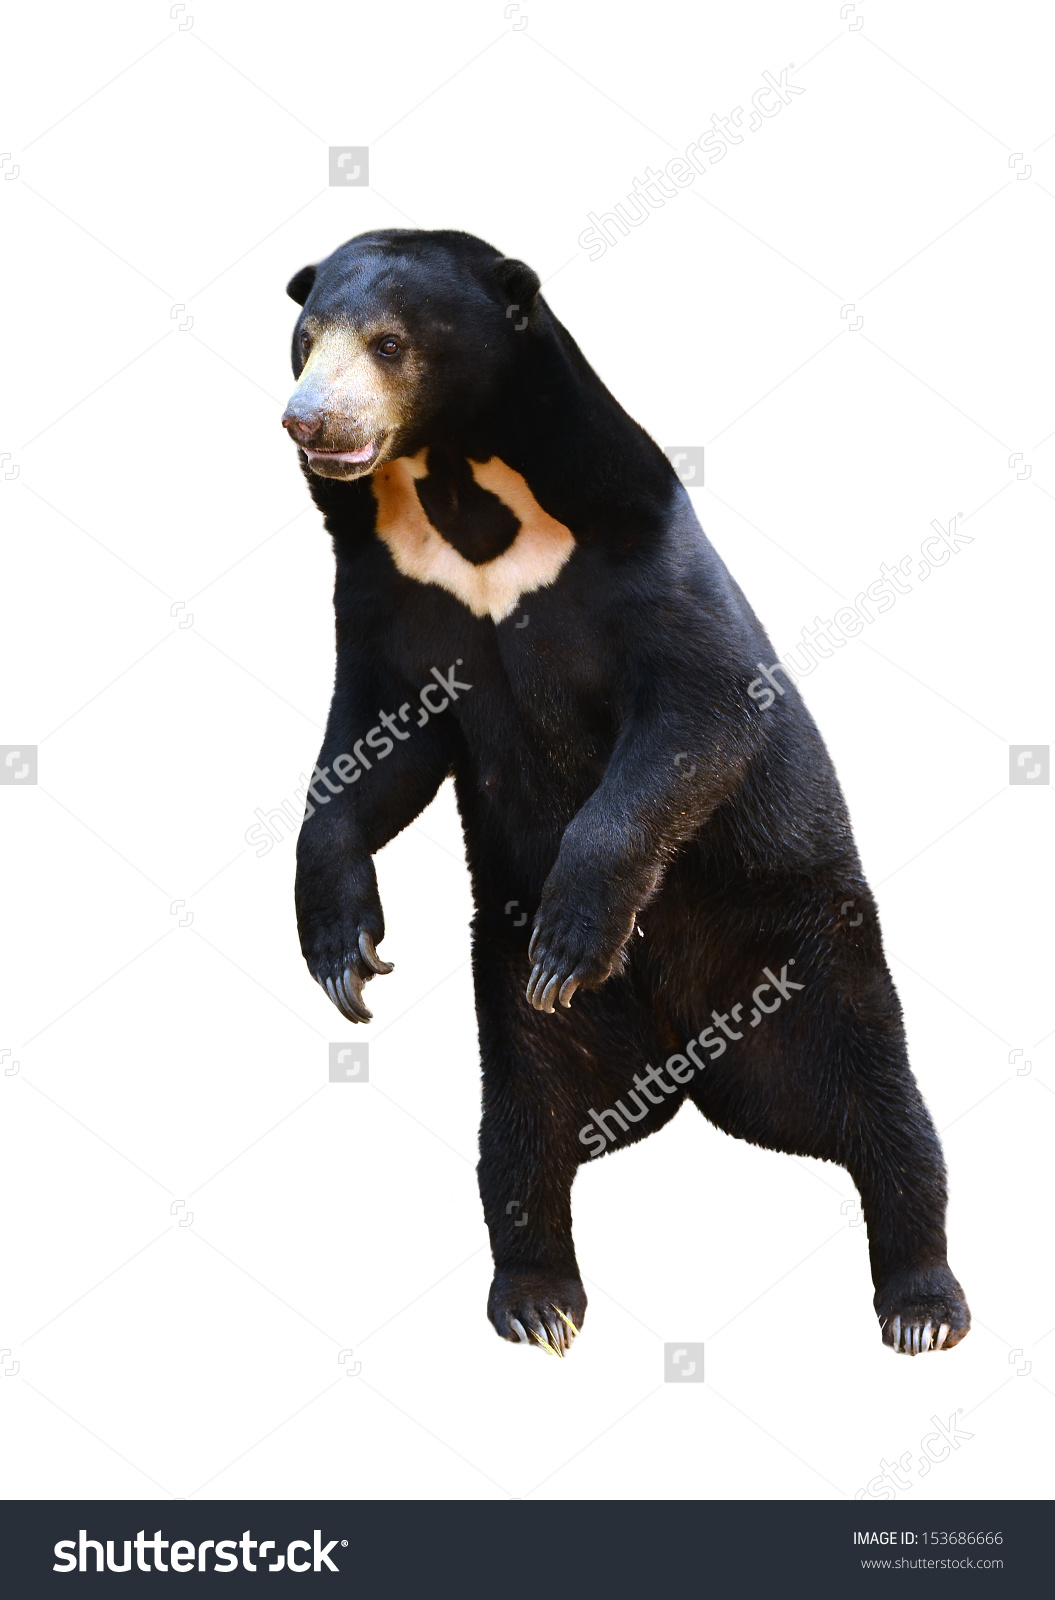 Sun Bear clipart #2, Download drawings